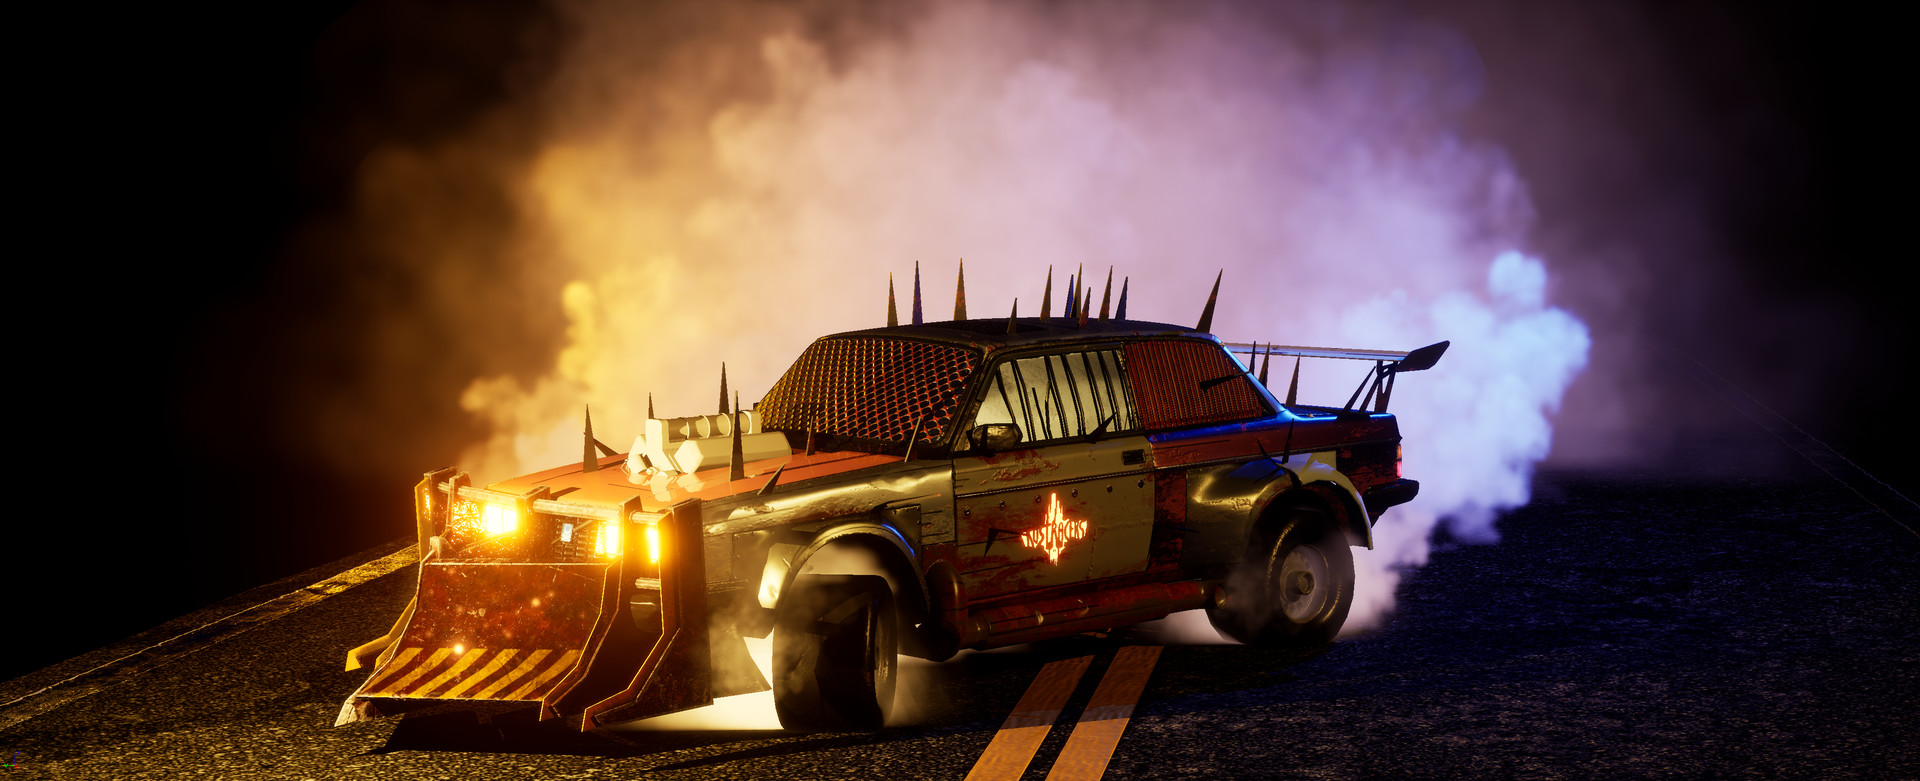 Drive Hard Or Die Trying In 'Rust Racers' Coming To STEAM Offering Massive Online Vehicle Destruction And Mayhem